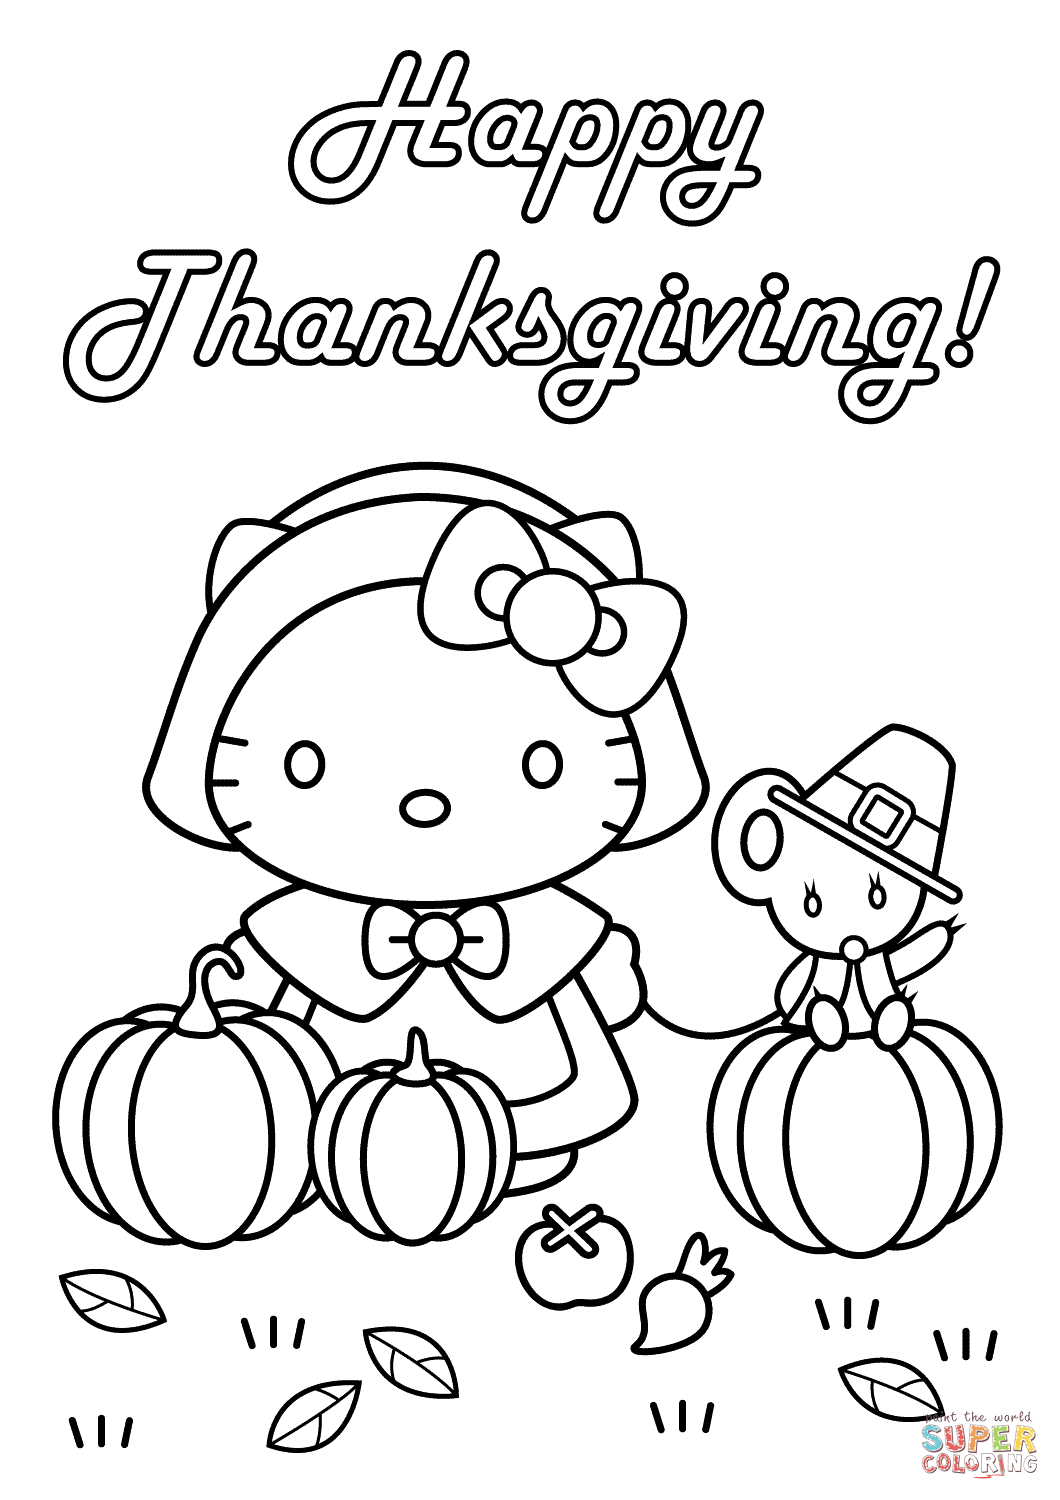 Hello Kitty Happy Thanksgiving Coloring Page | Free Printable - Free Printable Thanksgiving Coloring Pages